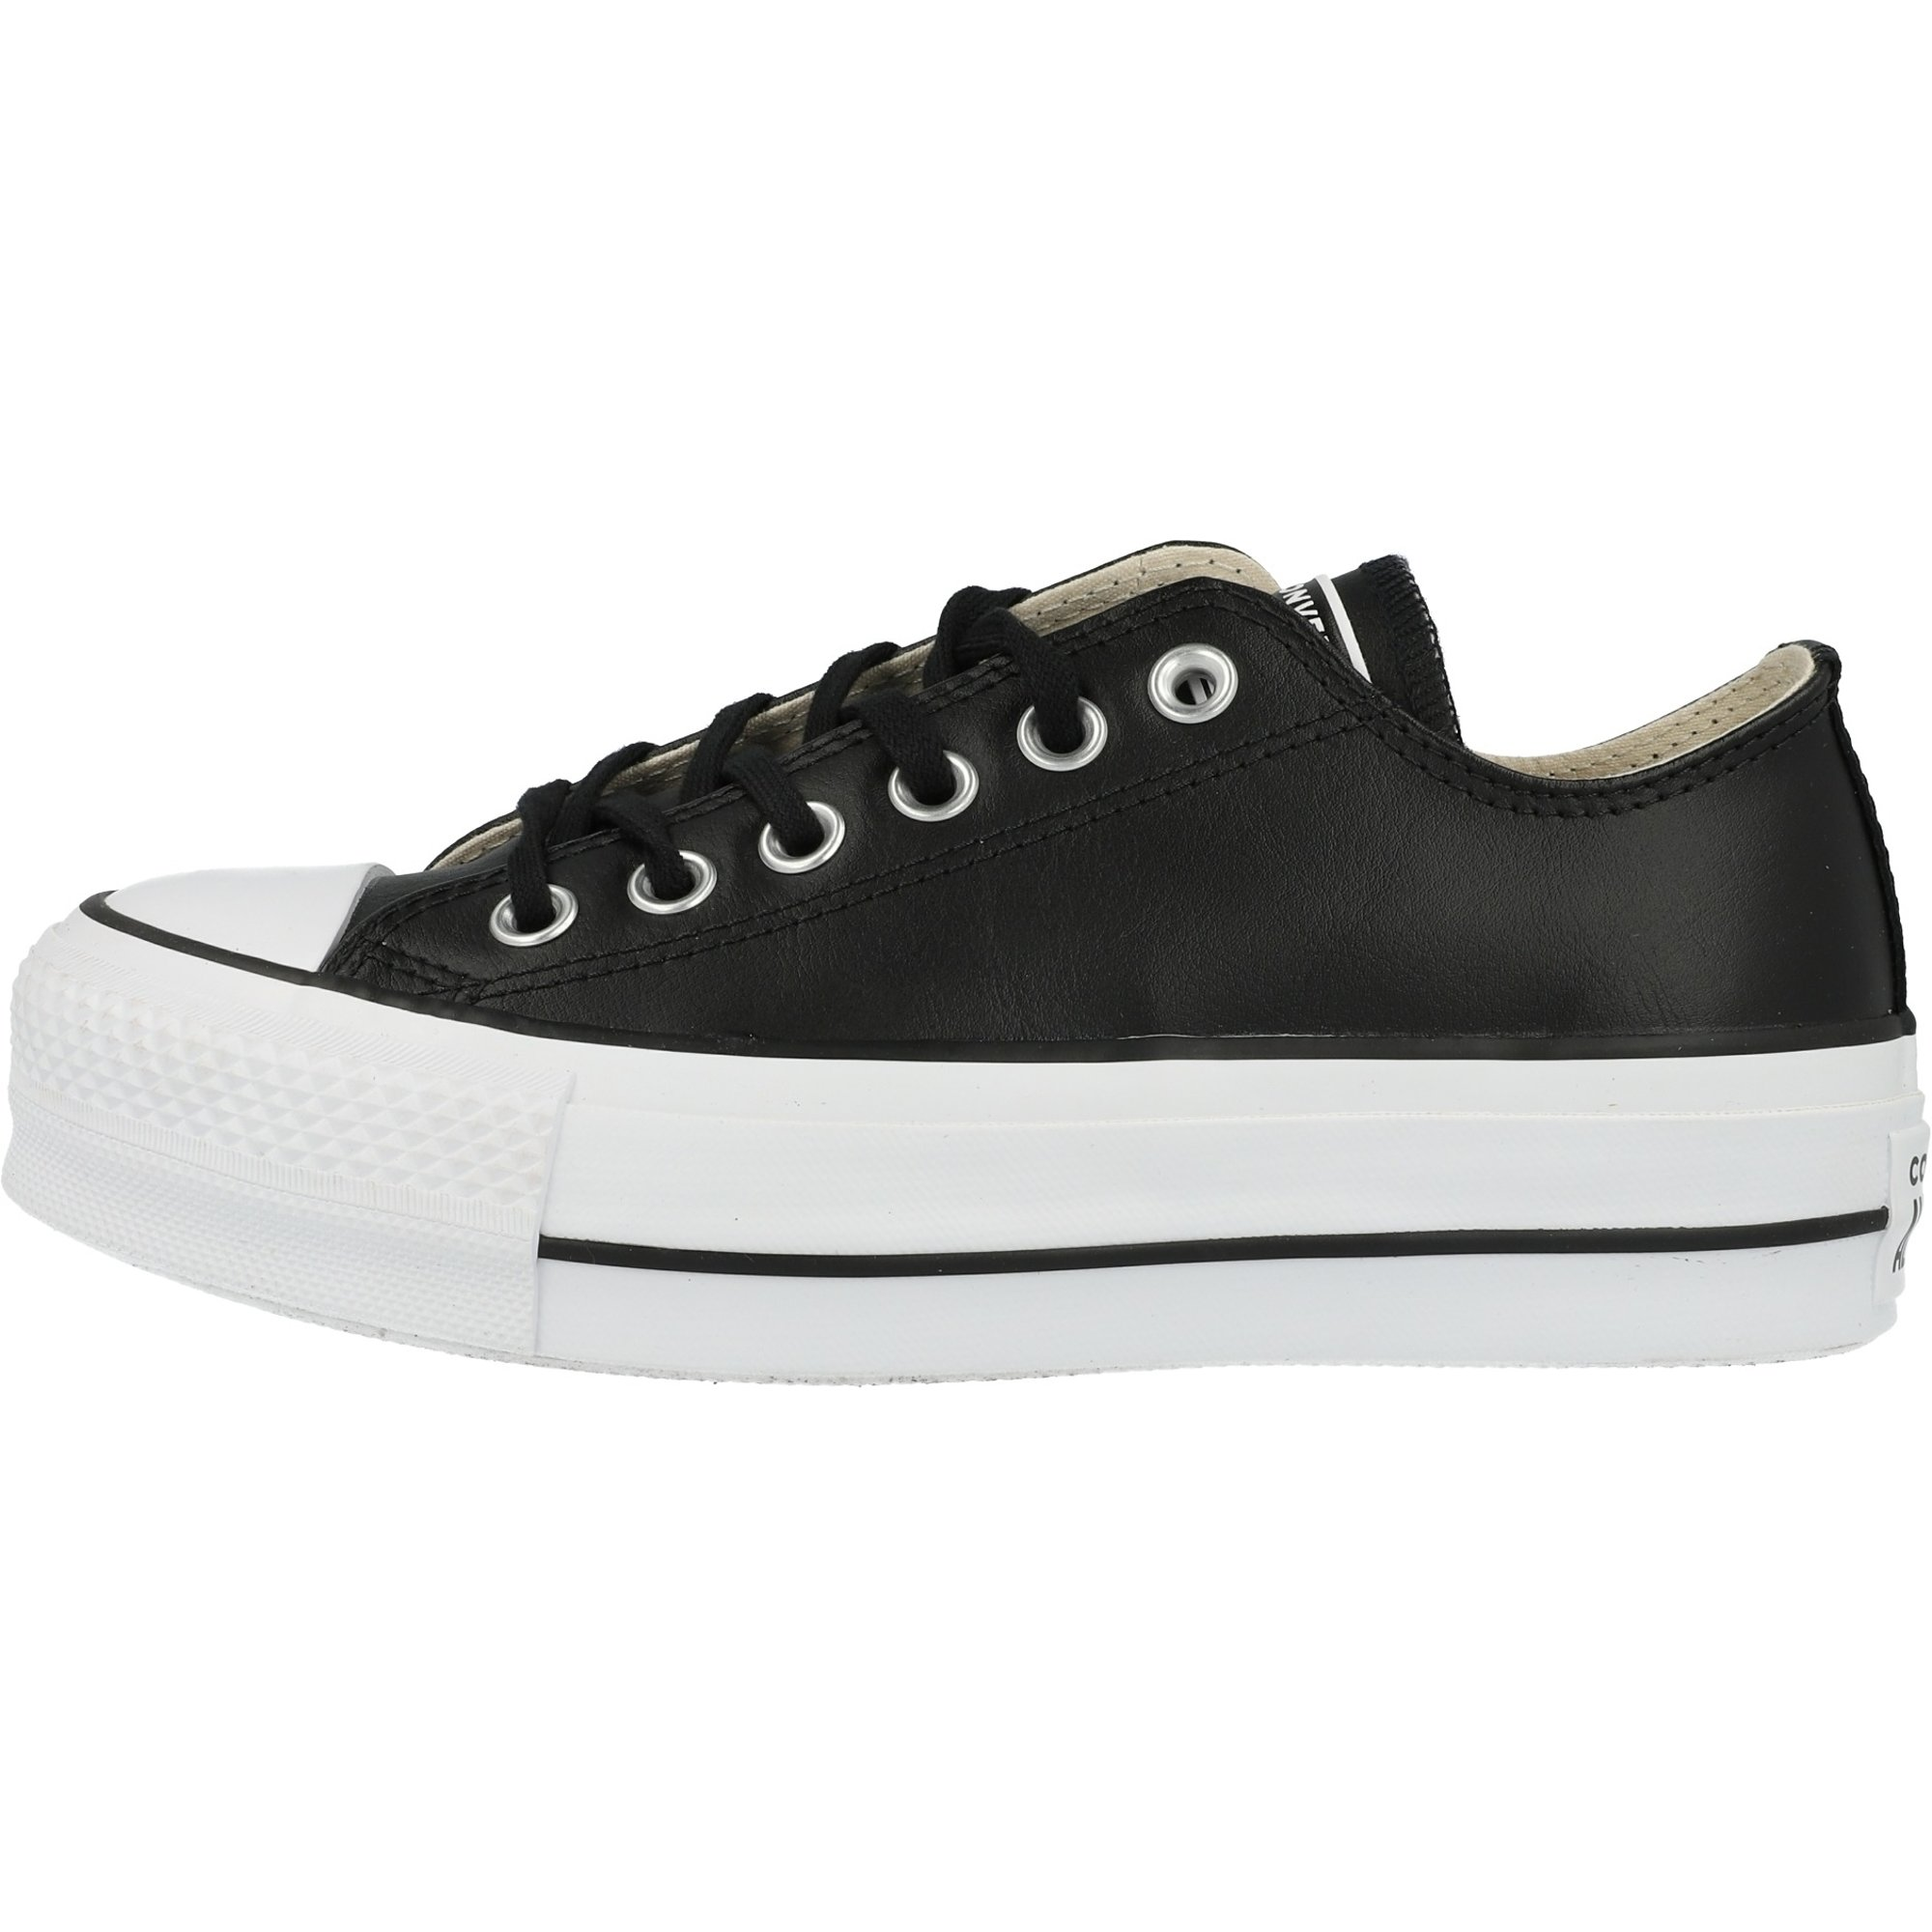 Converse Converse Chuck Taylor All Star Lift Clean Ox Black/White Leather  Adult